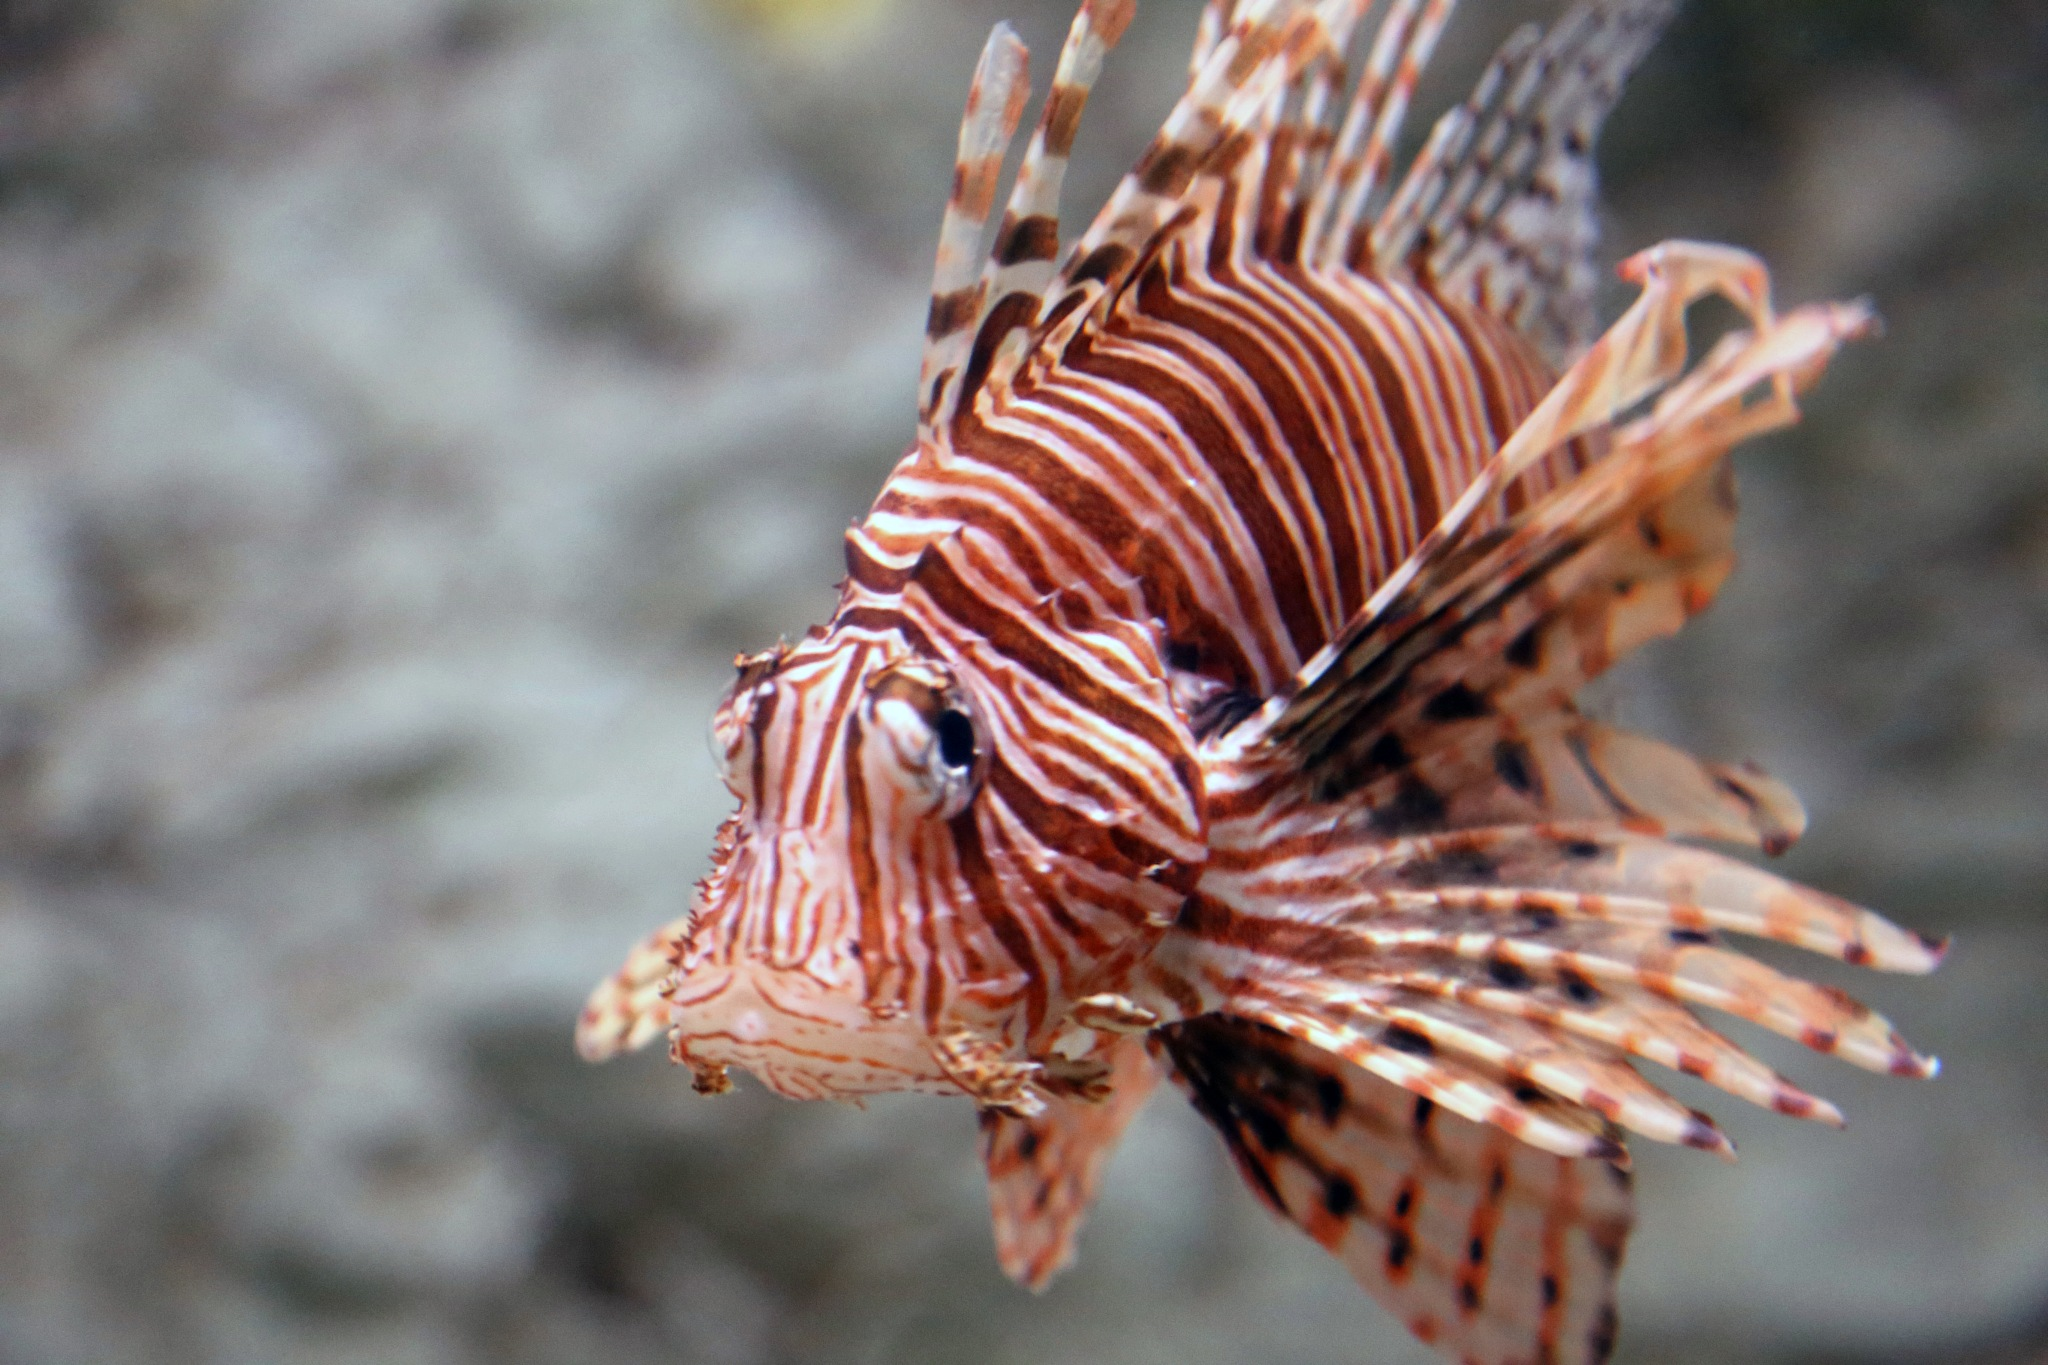 Lionfish by Charlene Phillips